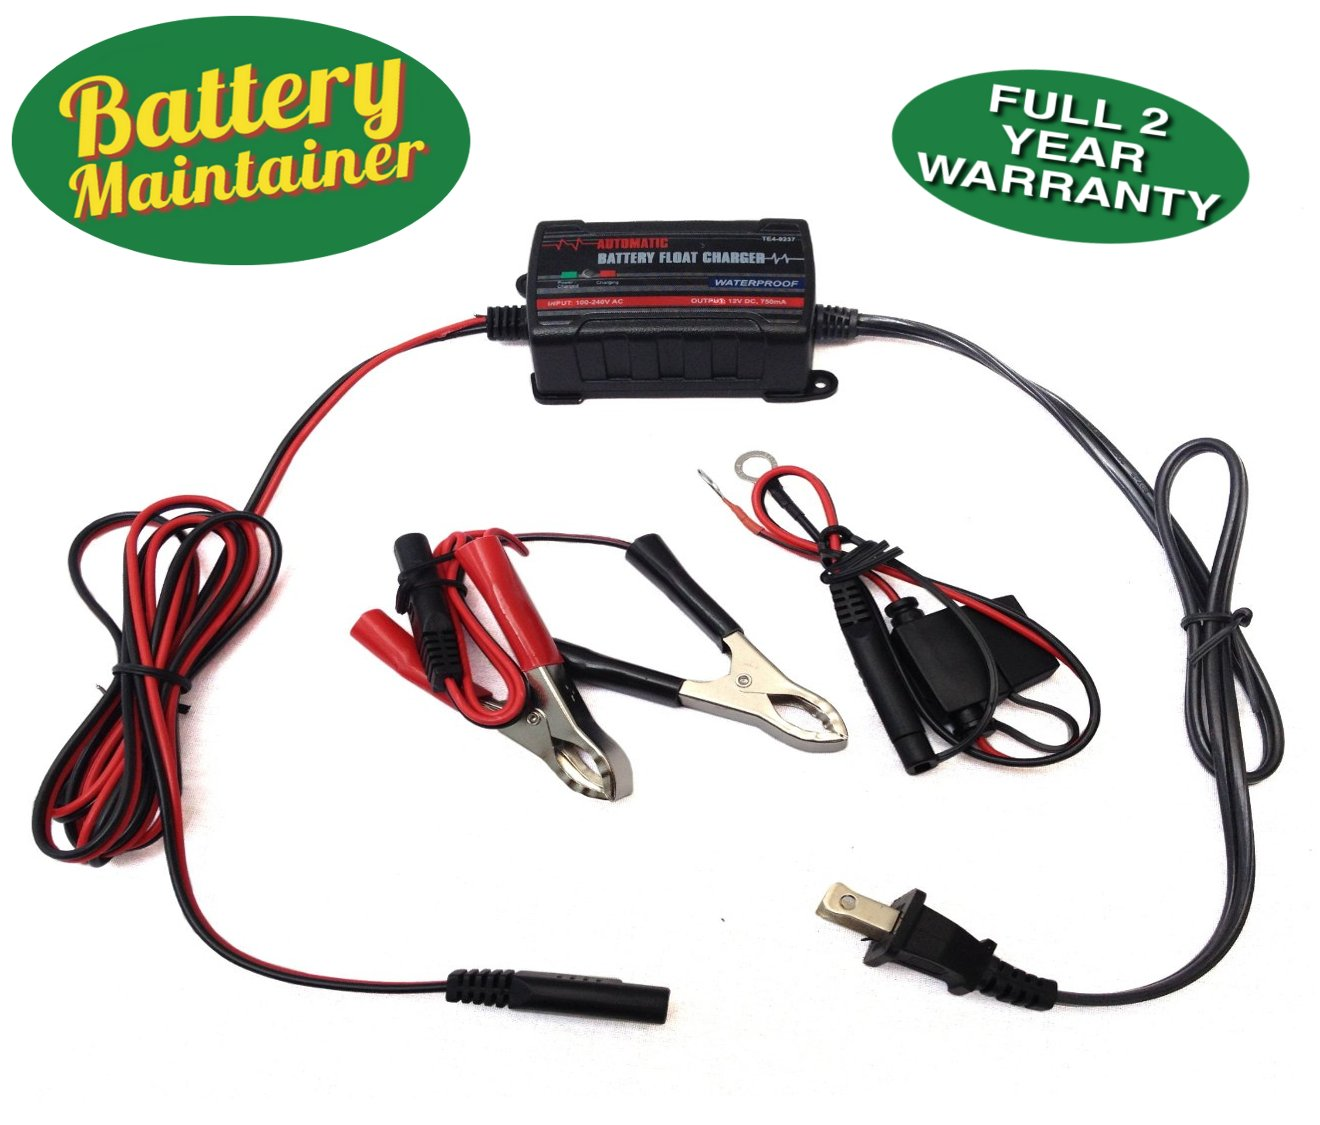 Battery Maintainer 12v 750ma Automatic Battery Charger